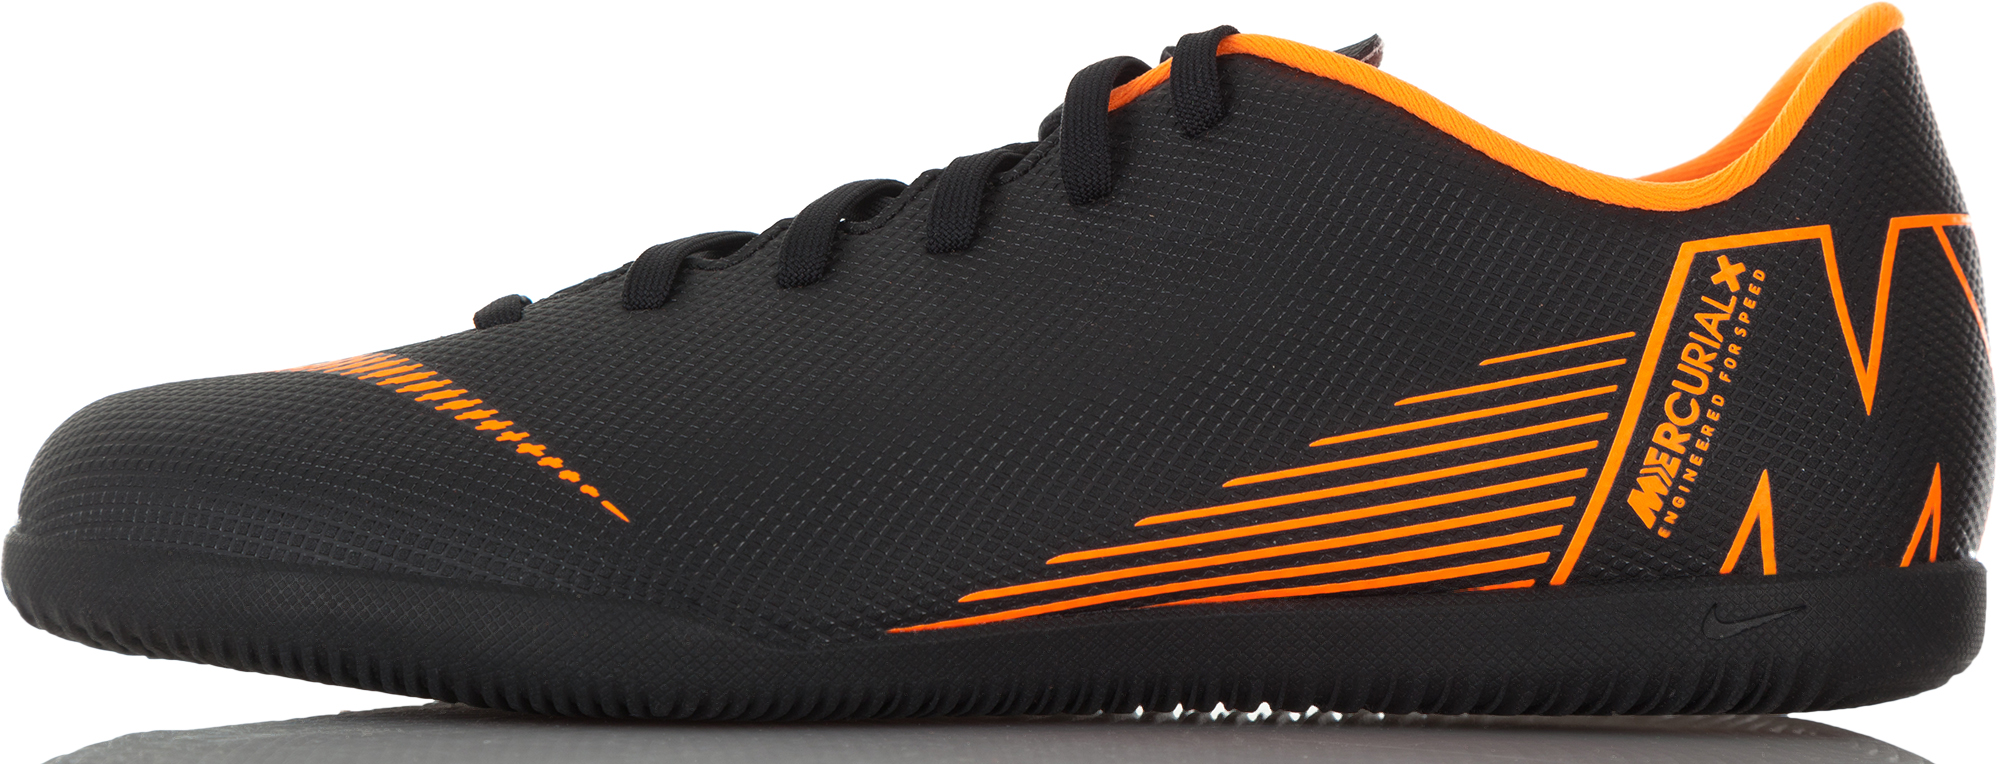 Nike Бутсы для мальчиков Nike Vaporx 12 Club Gs IC бутсы nike бутсы jr mercurialx vapor xi ic